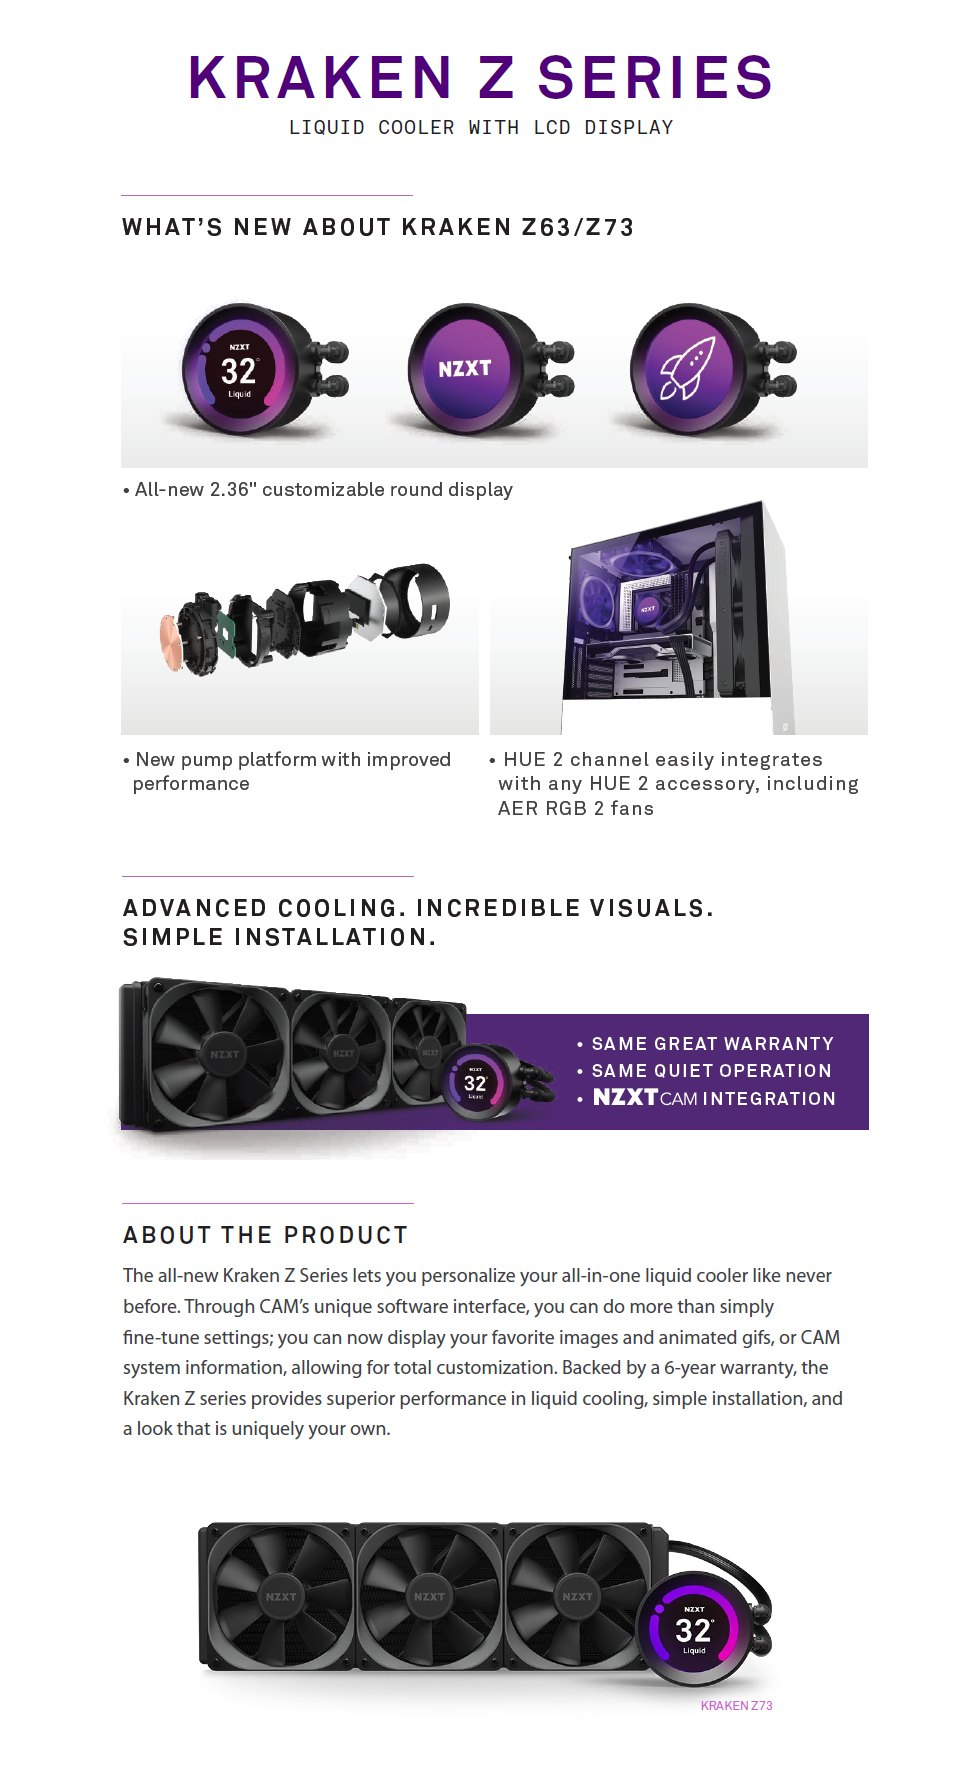 NZXT Kraken Z73 360mm AIO Liquid CPU Cooler features